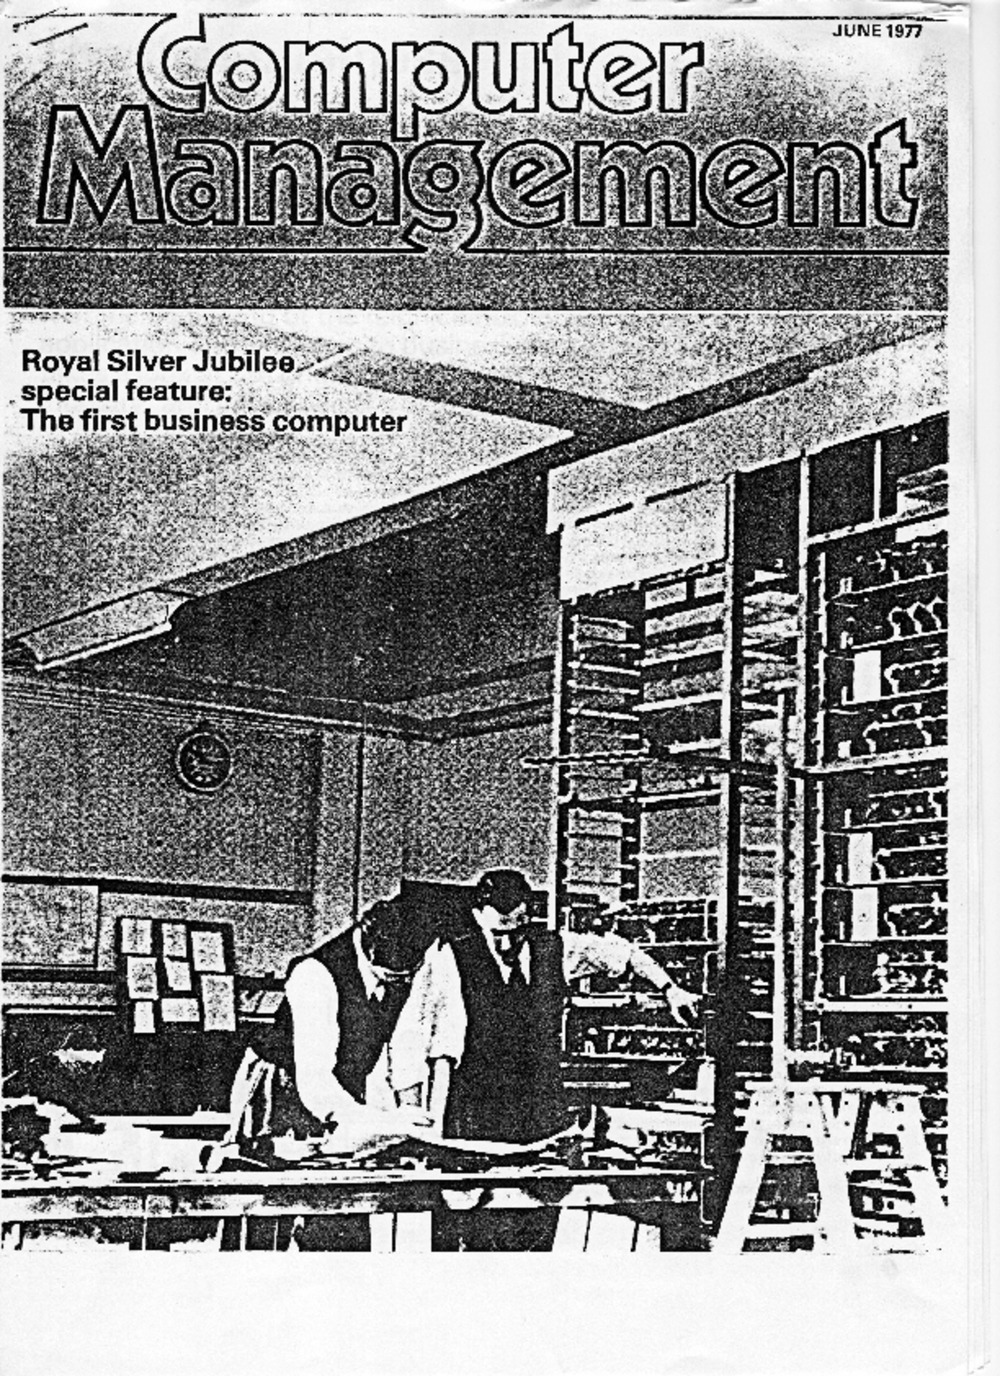 Article: The First Business Computer